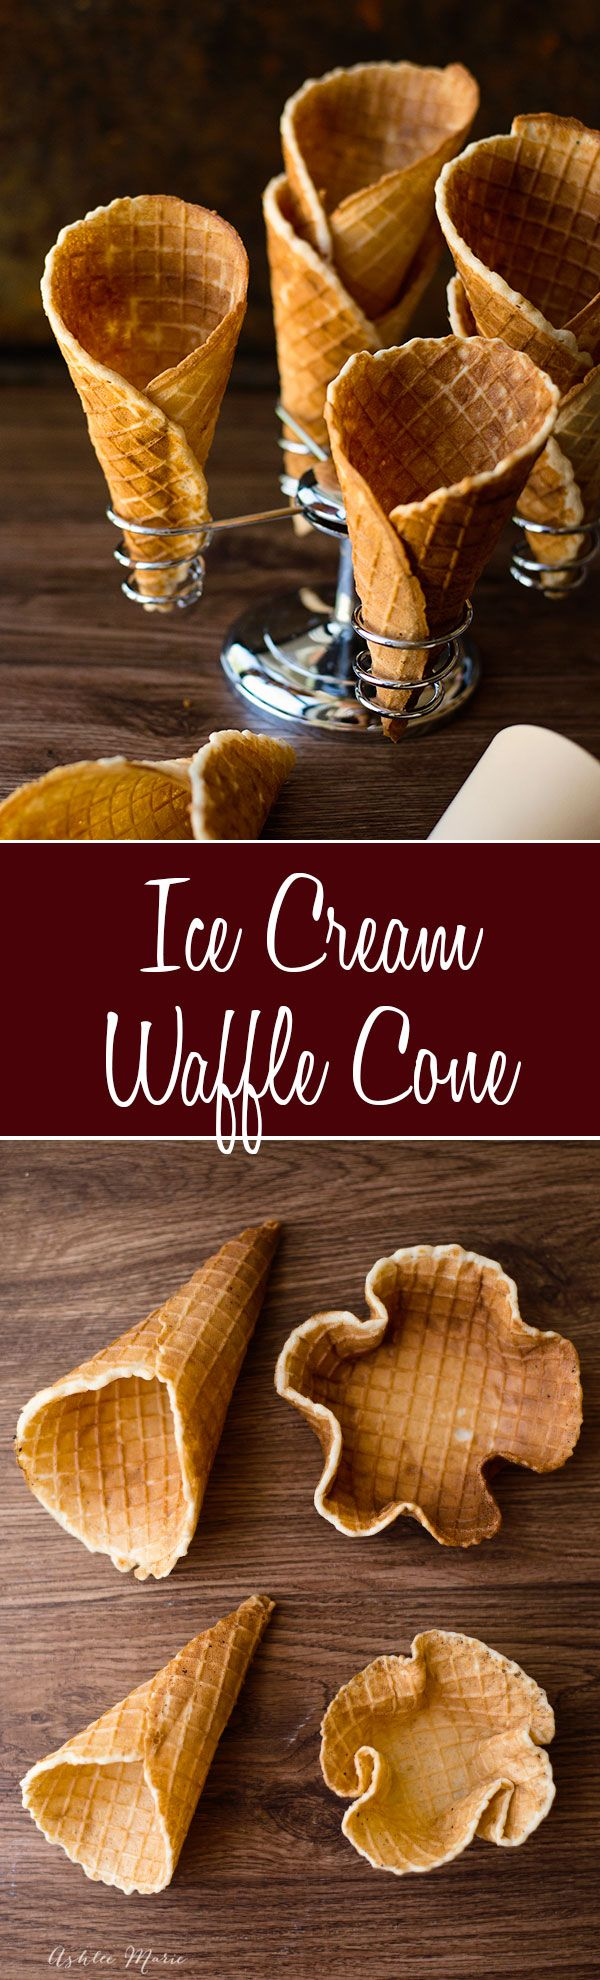 homemade waffle cones are super easy to make, and they taste amazing.  Always a huge hit with everyone, make different sized cones or bowls